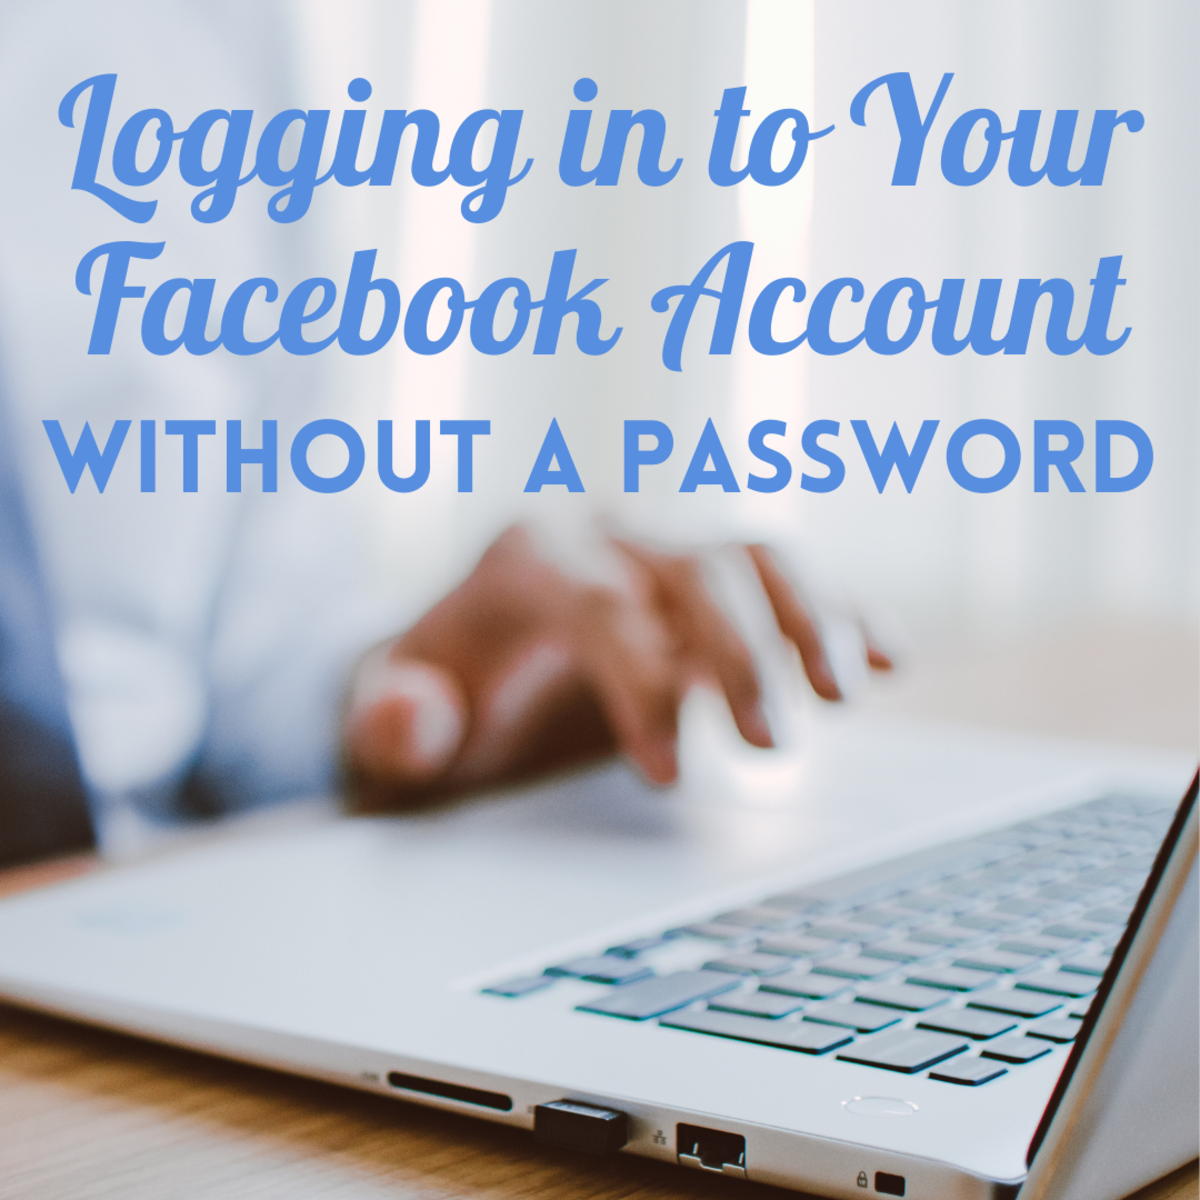 Forgot your password? Learn how to log in to your Facebook account without a password.